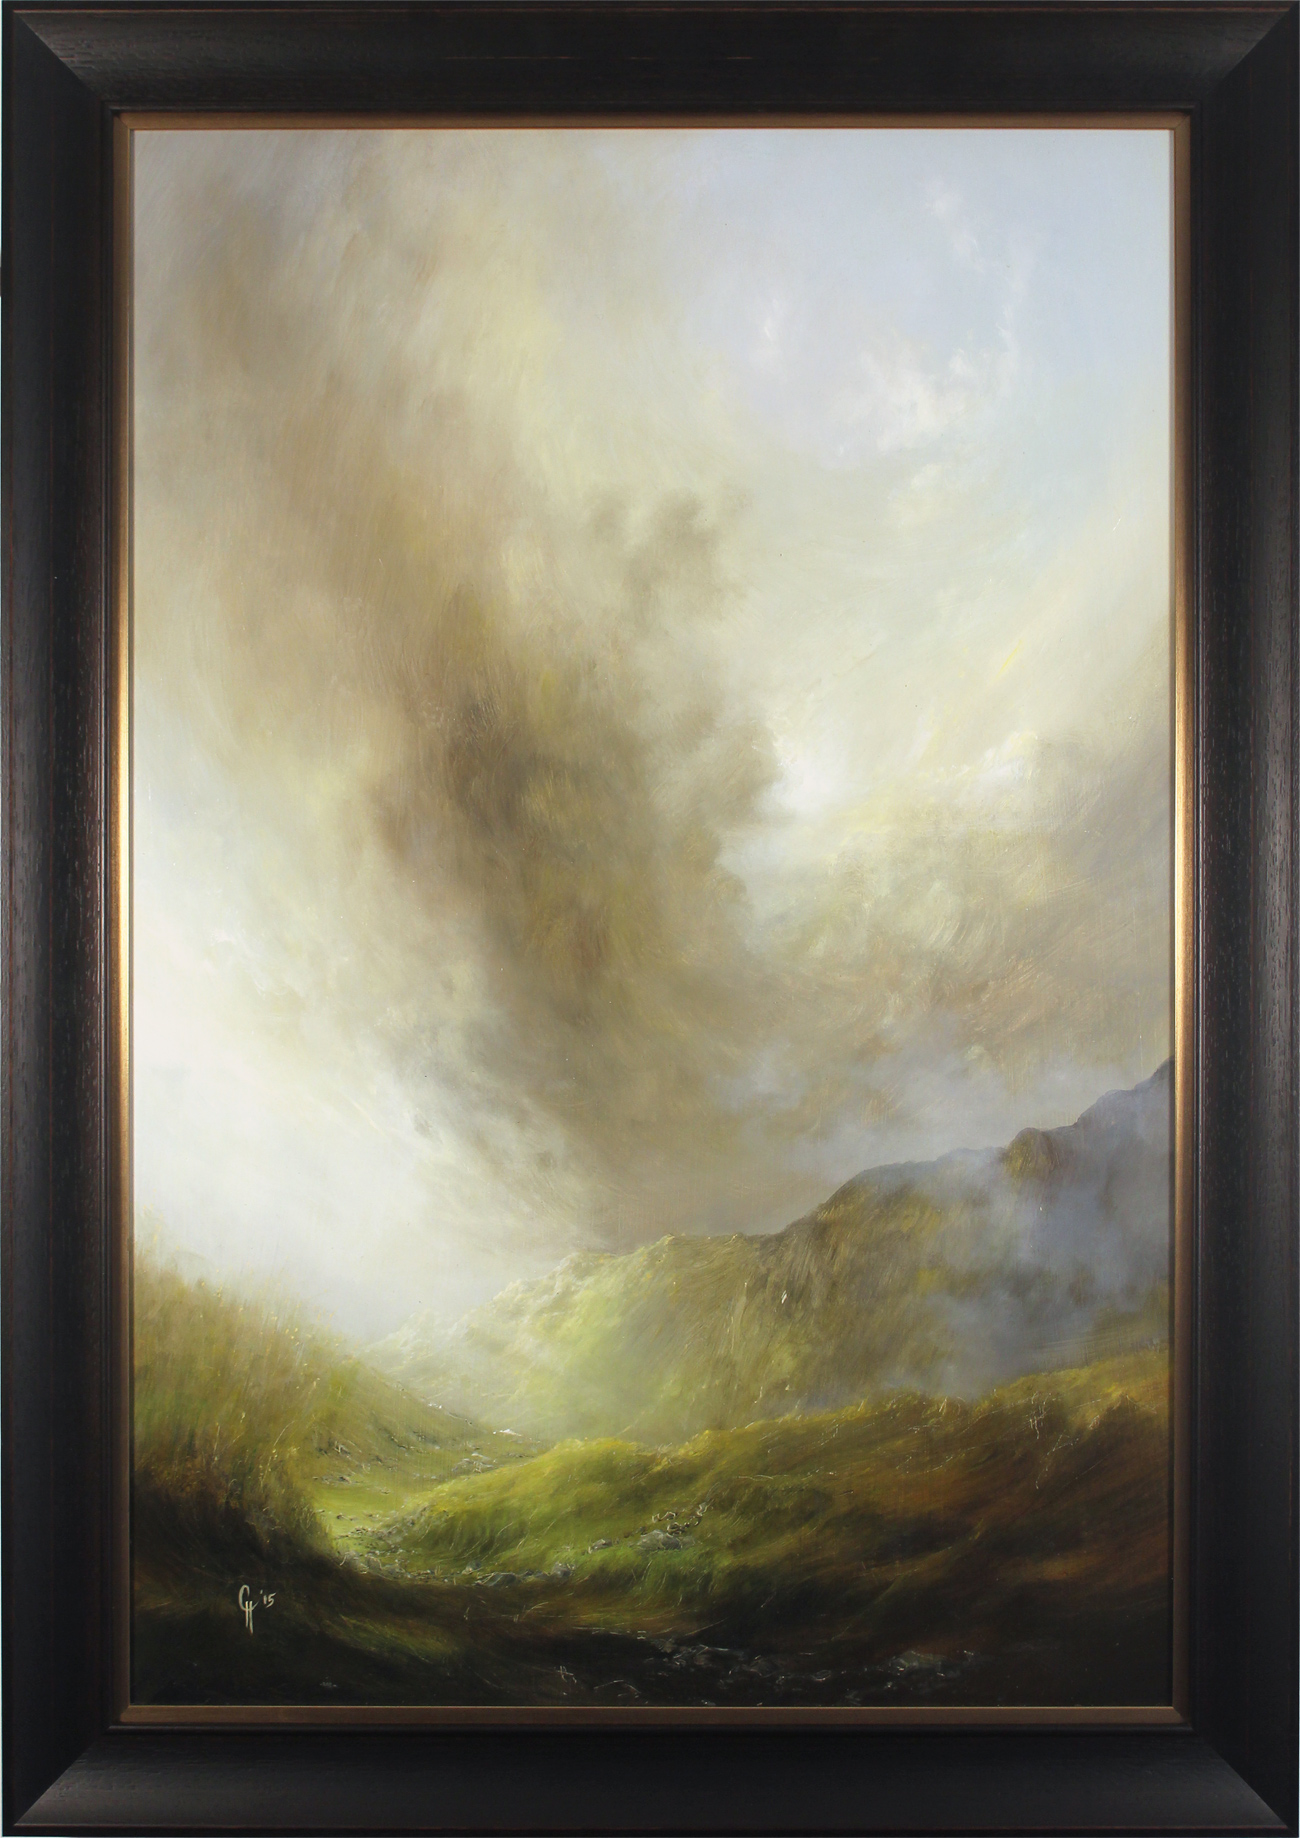 Clare Haley, Original oil painting on panel, Down to the Valley from the Mossy Path Click to enlarge